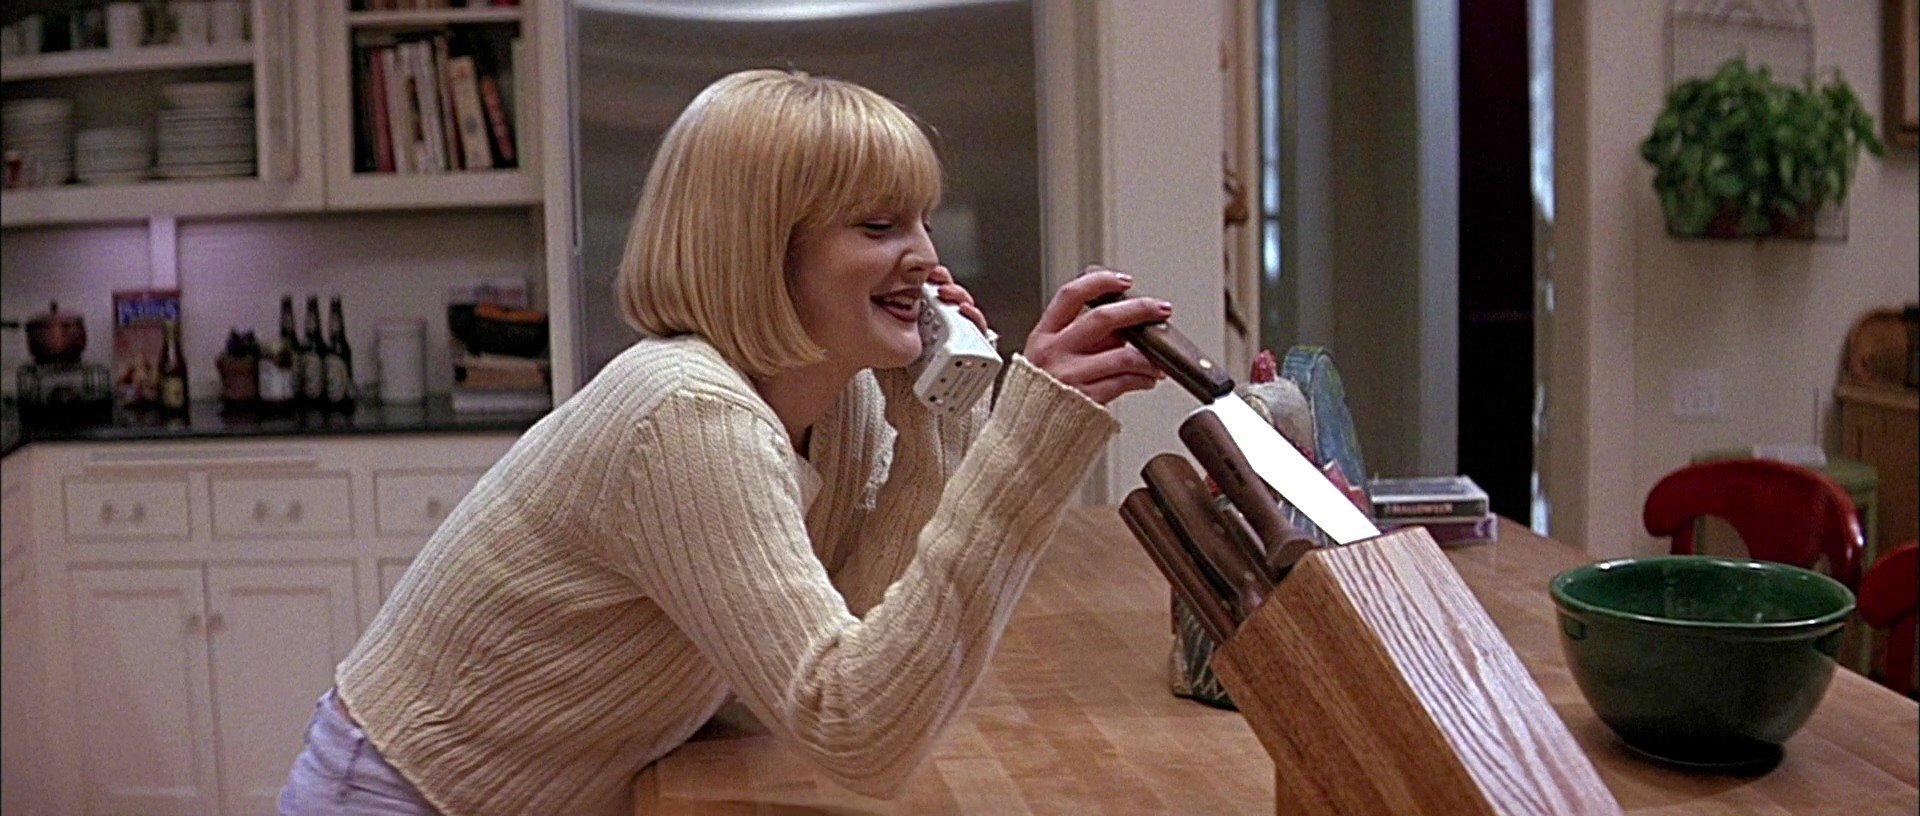 Drew Barrymore in Scream (1996)